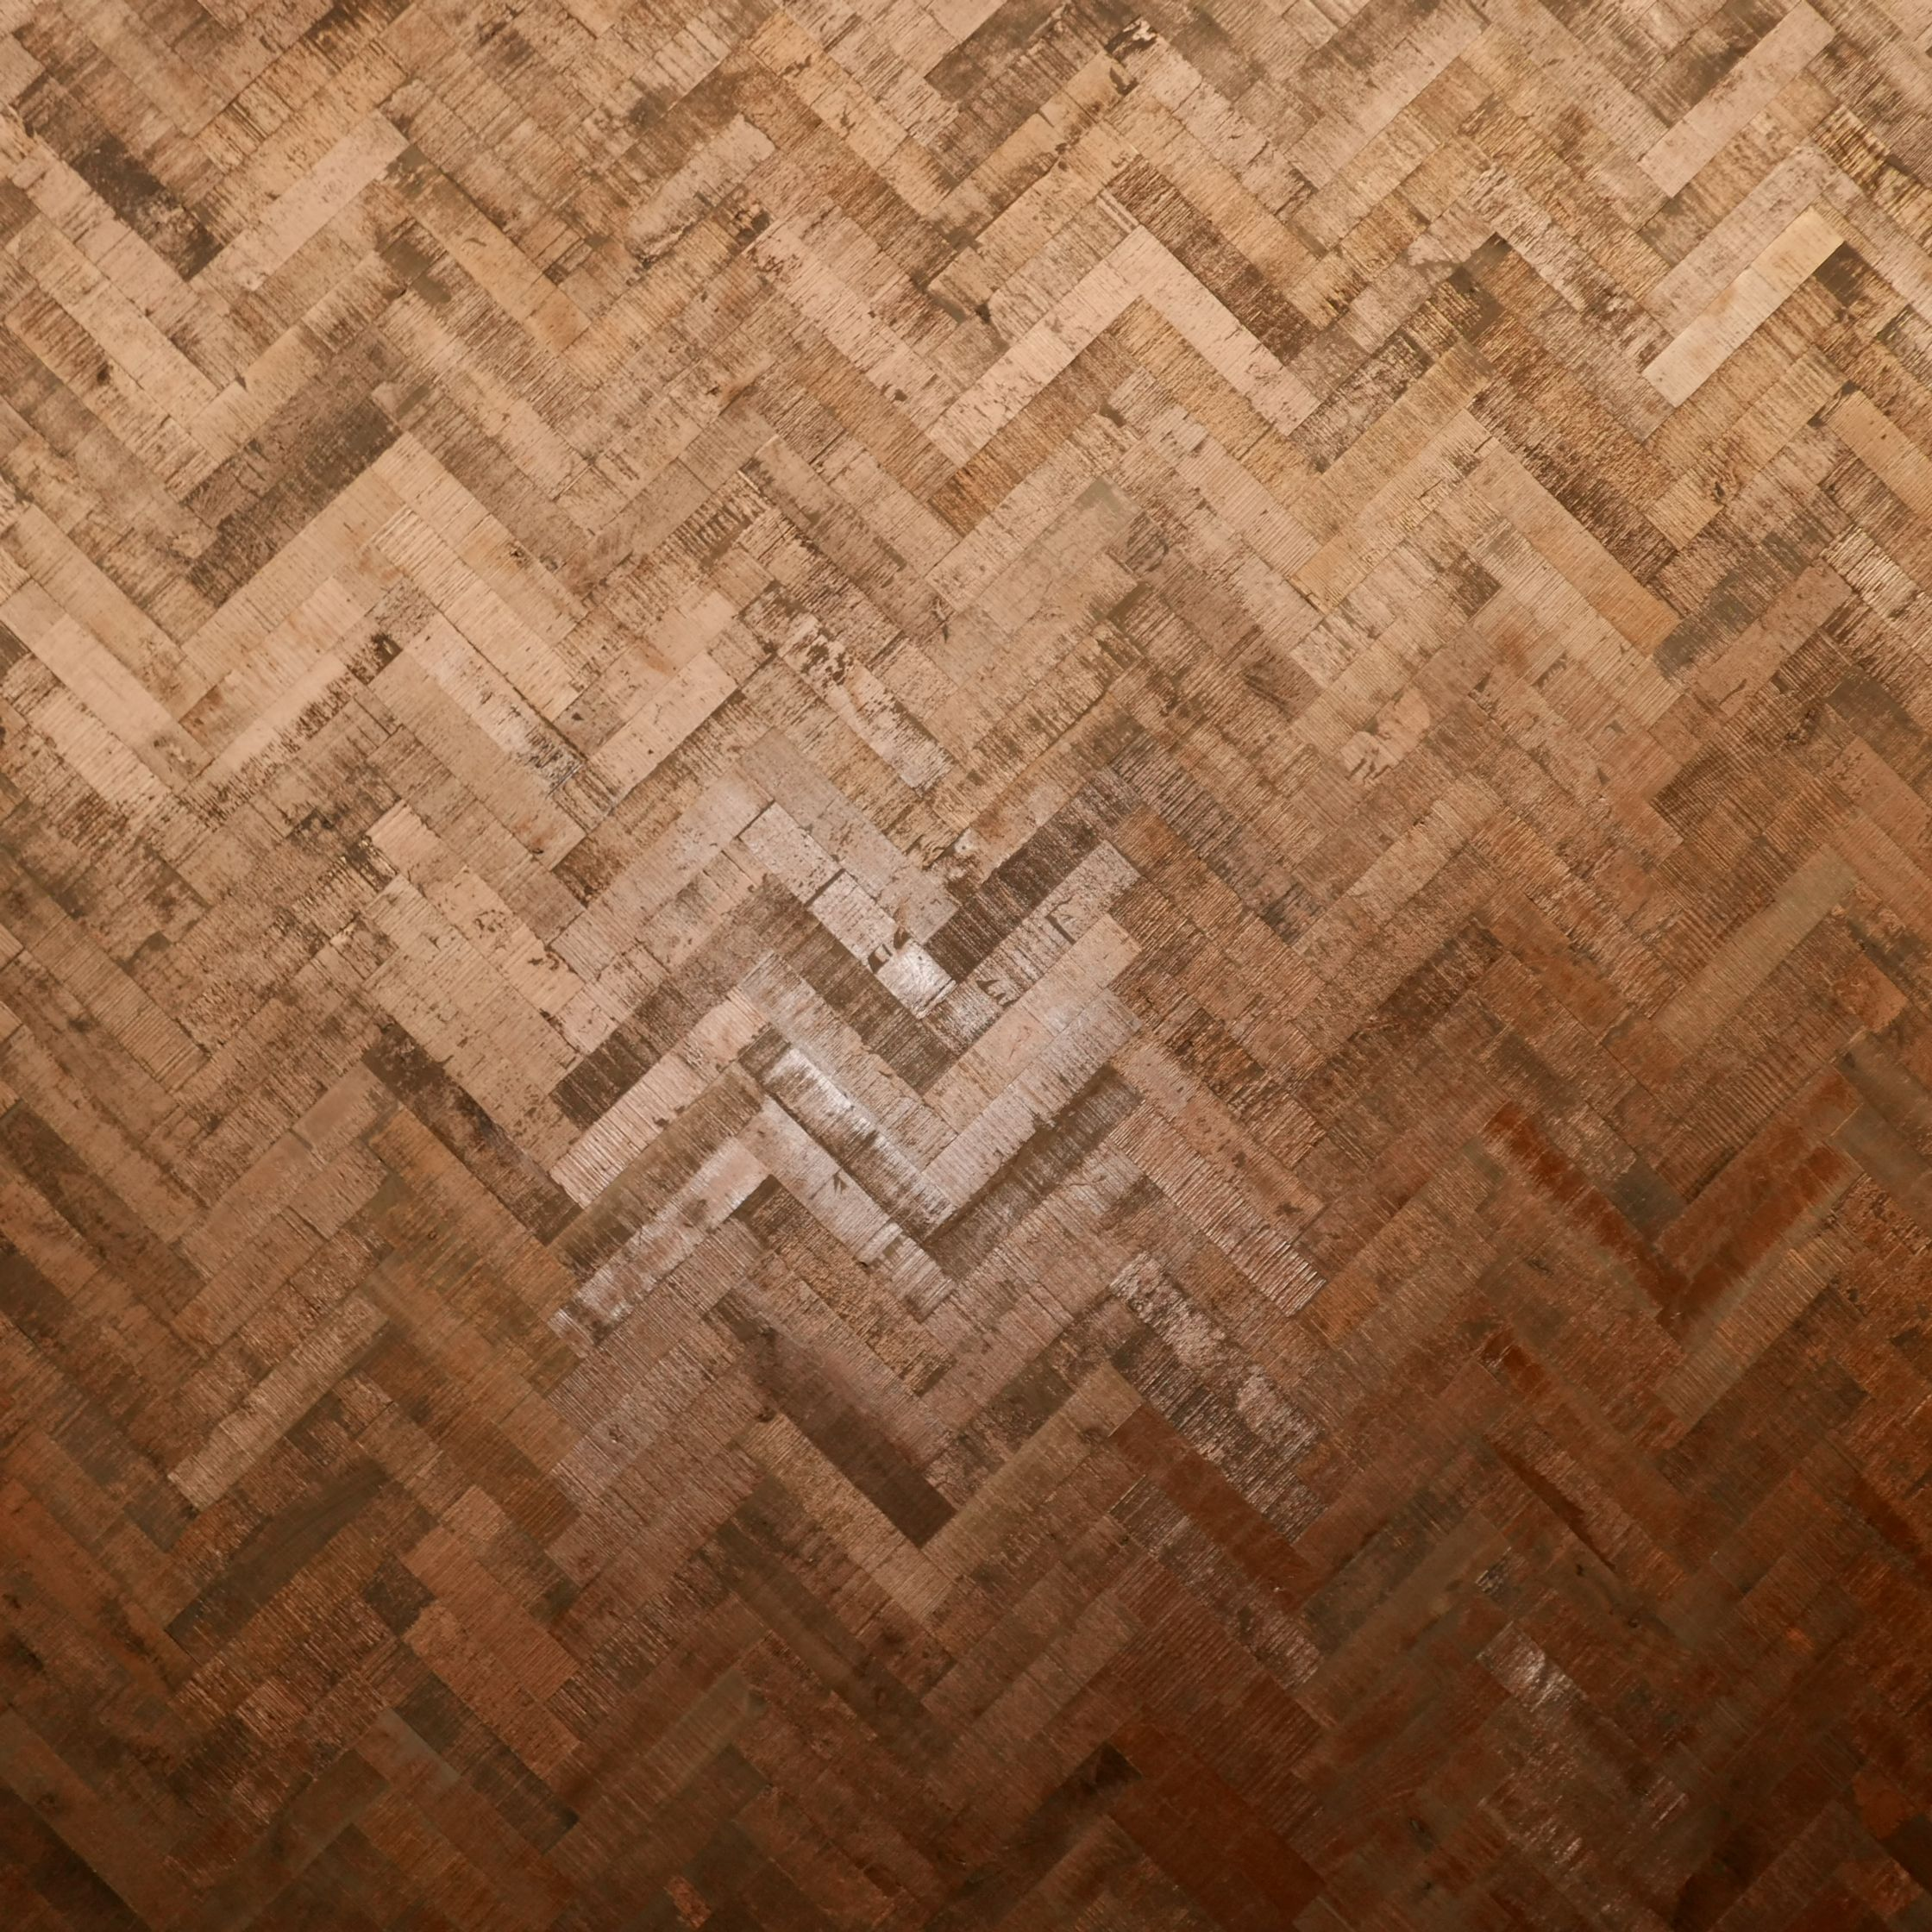 Copper Herringbone parquet flooring by Ted Todd, as seen